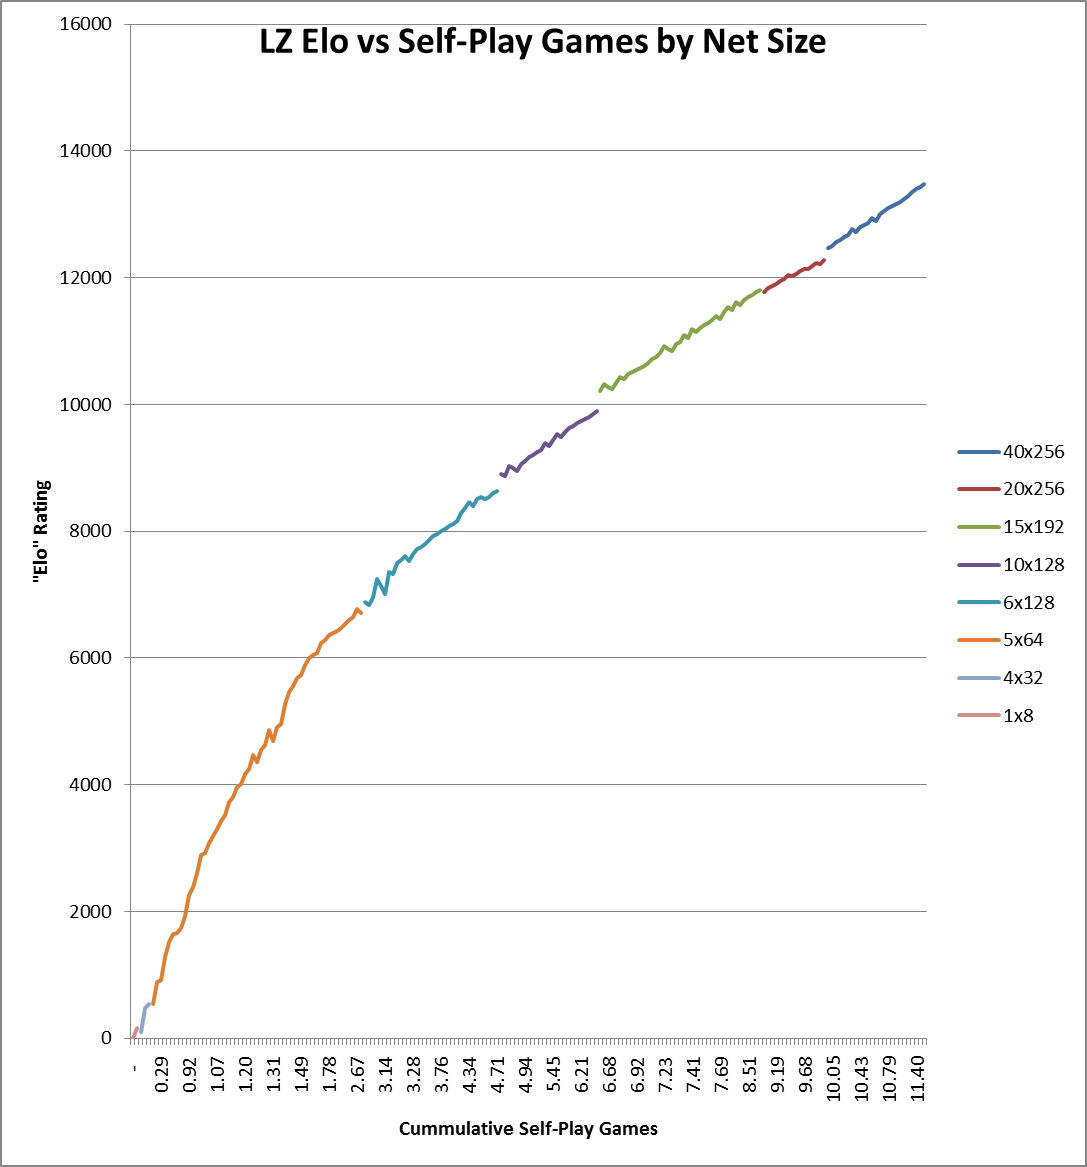 LZ Elo vs Self-Play Games by Net Size.jpg